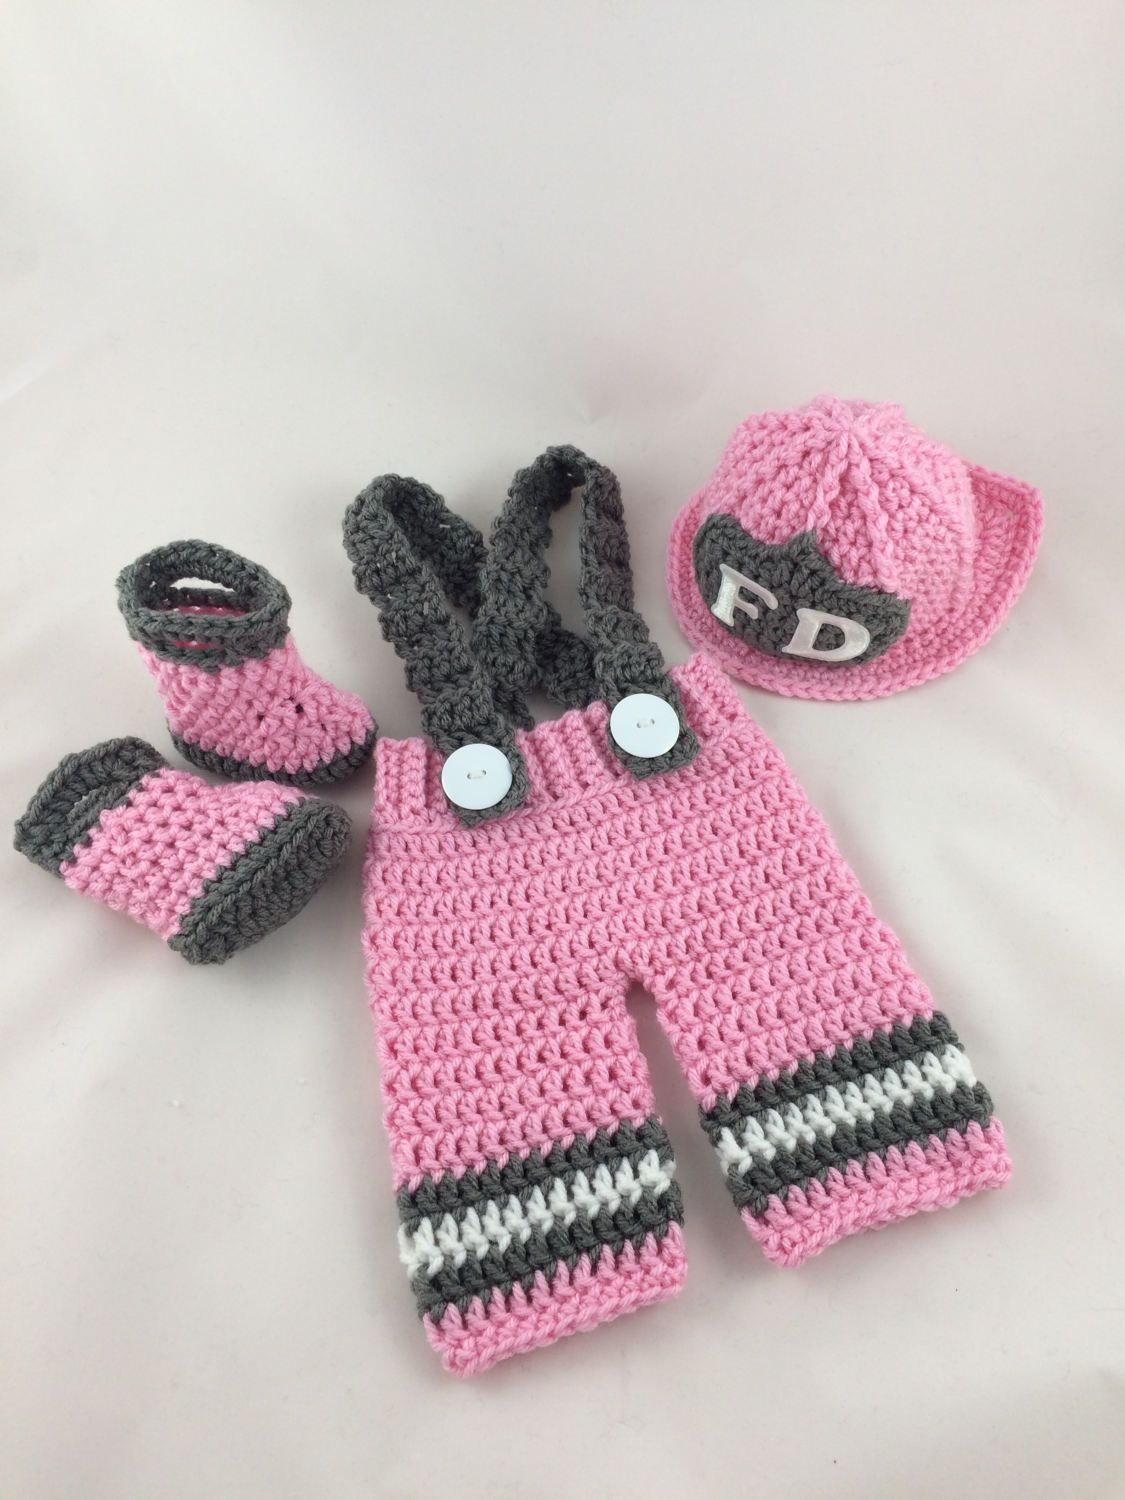 ee92d3f2e Baby Girl Firefighter Fireman Crochet Pink Hat Outfit - 4pc Turn Out Gear  w/Suspenders & Boots - Photography Prop - Newborn - 0-3 by  TimelessCrochetCraft on ...